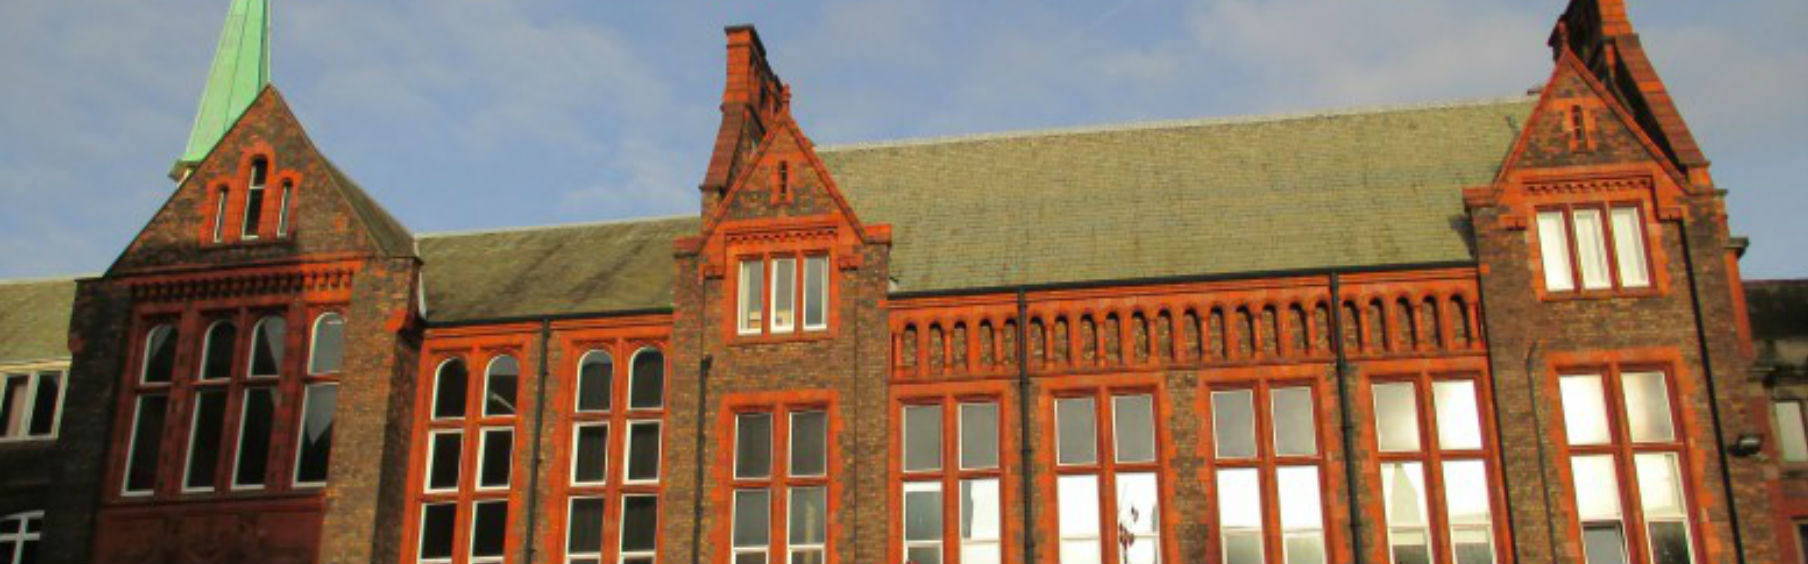 liverpool private student accommodation